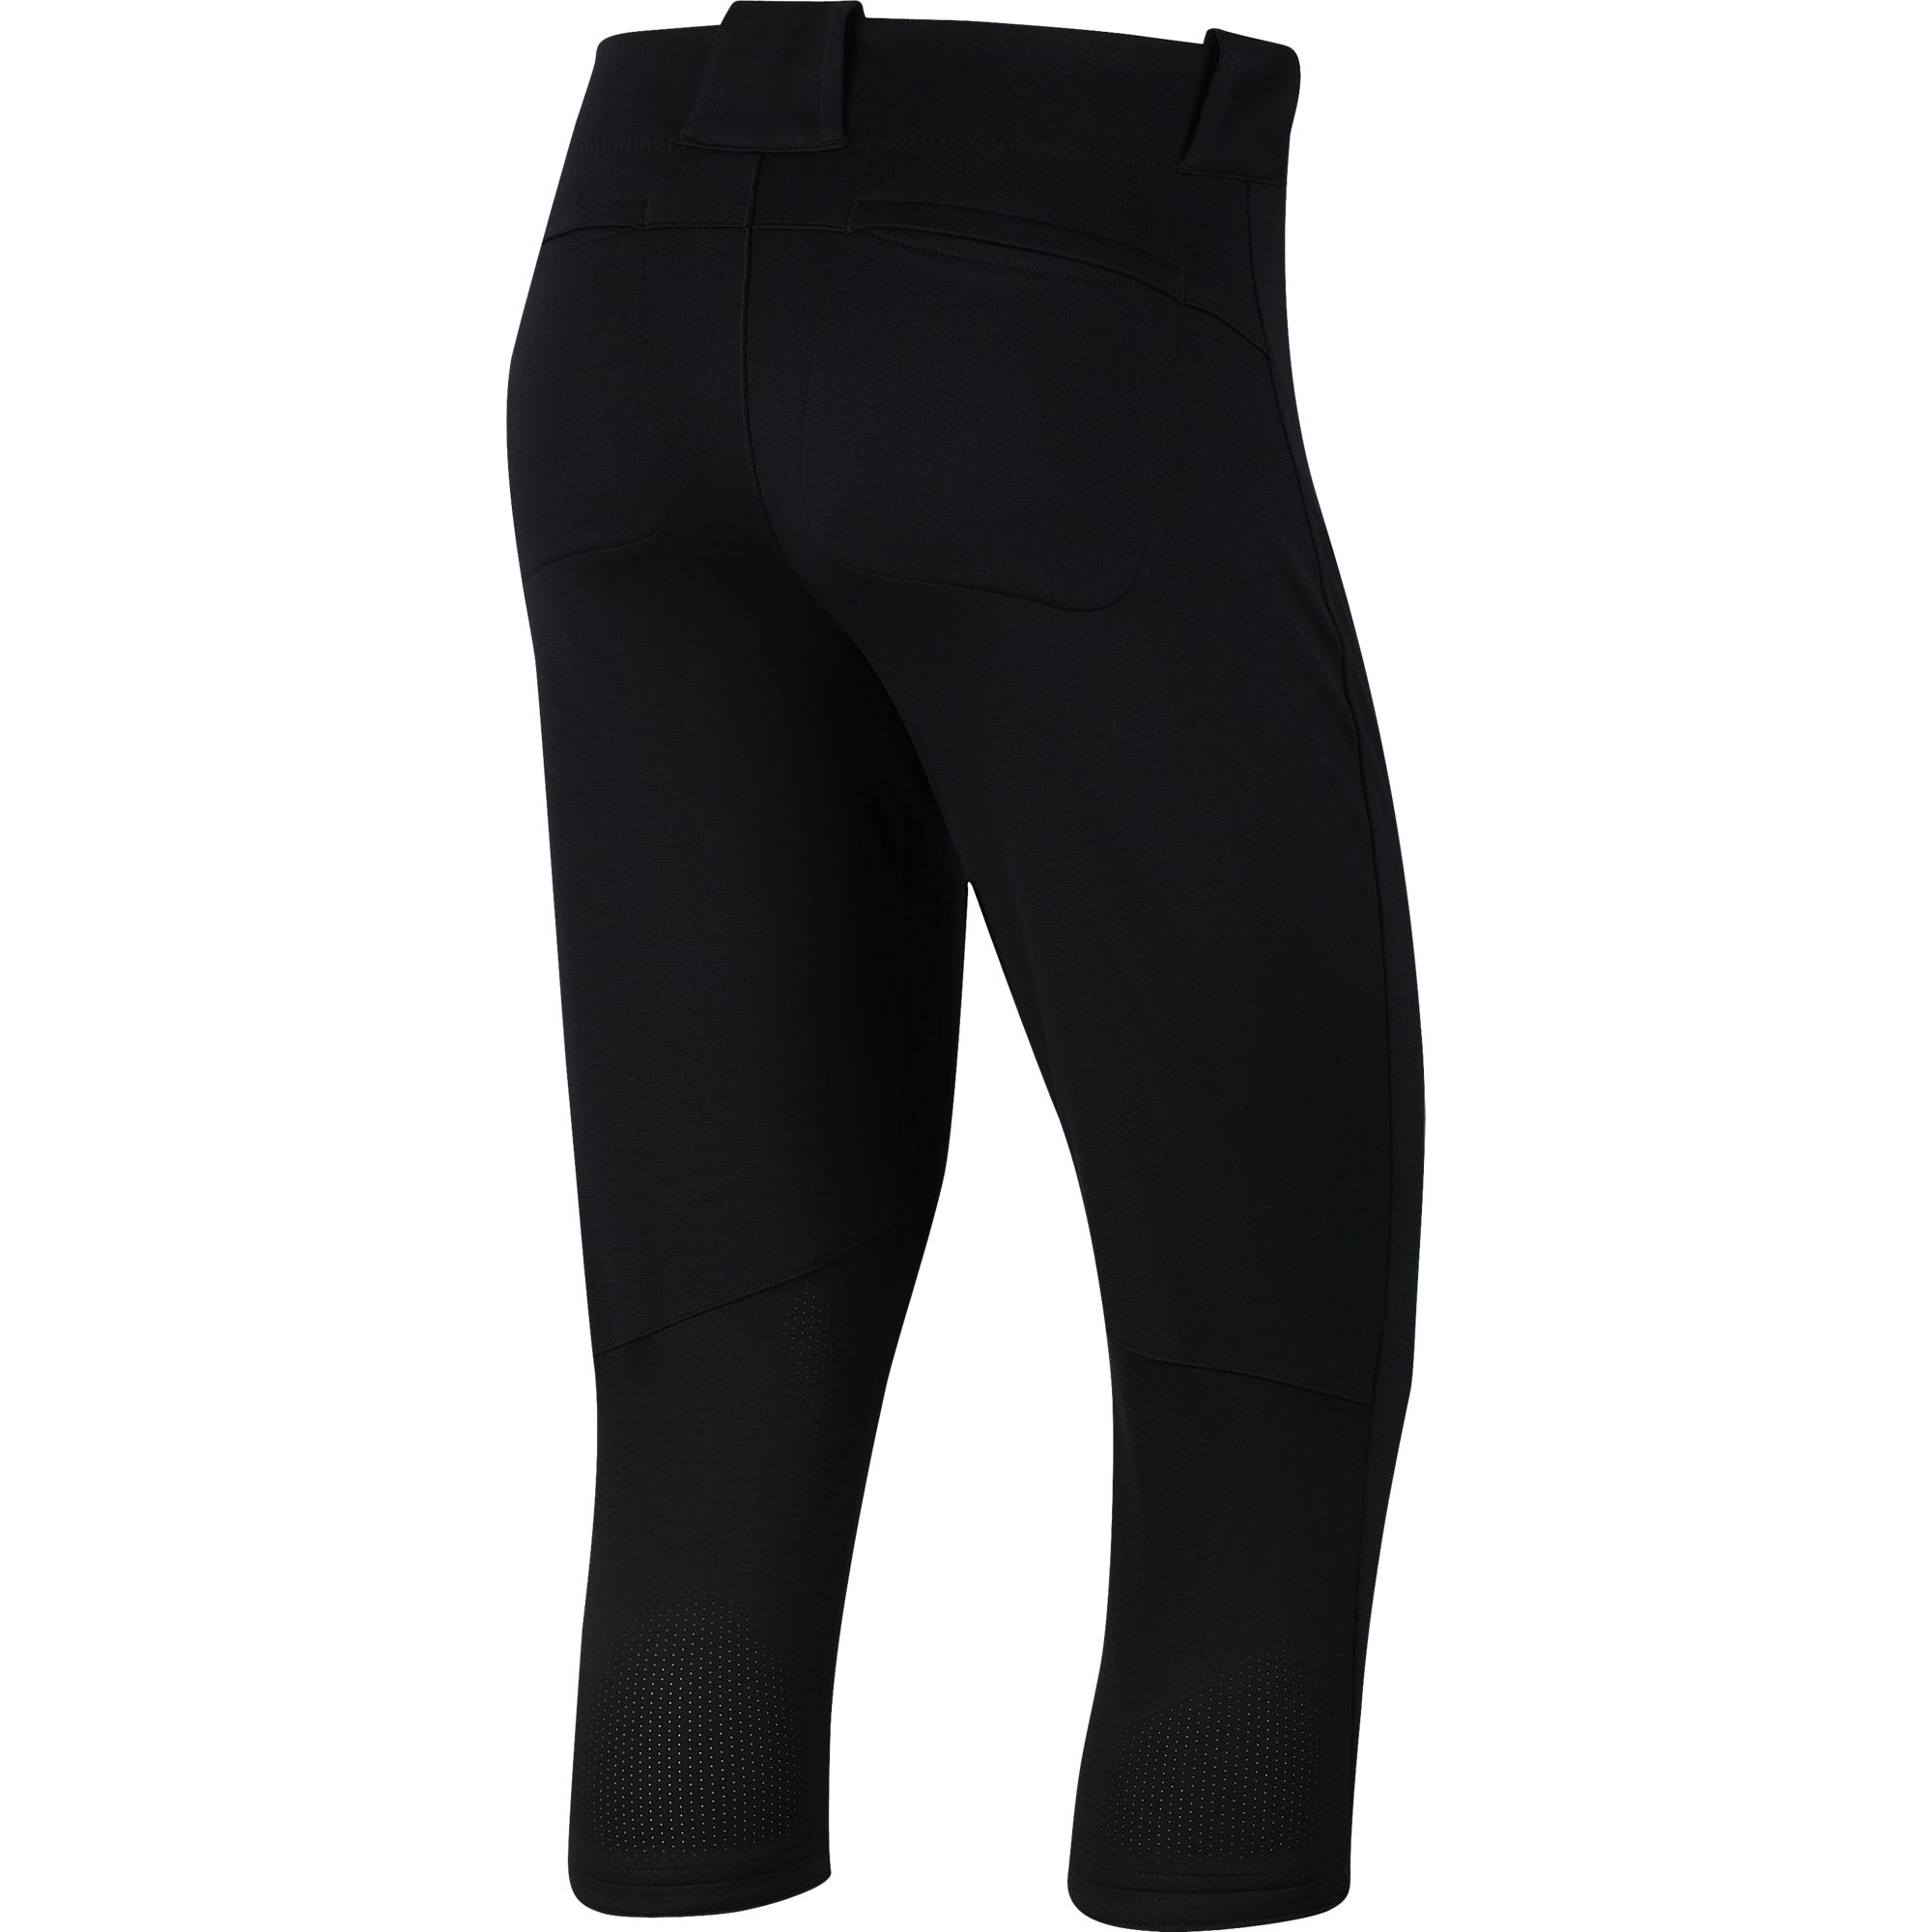 Women's Vapor Select Softball Pant, , large